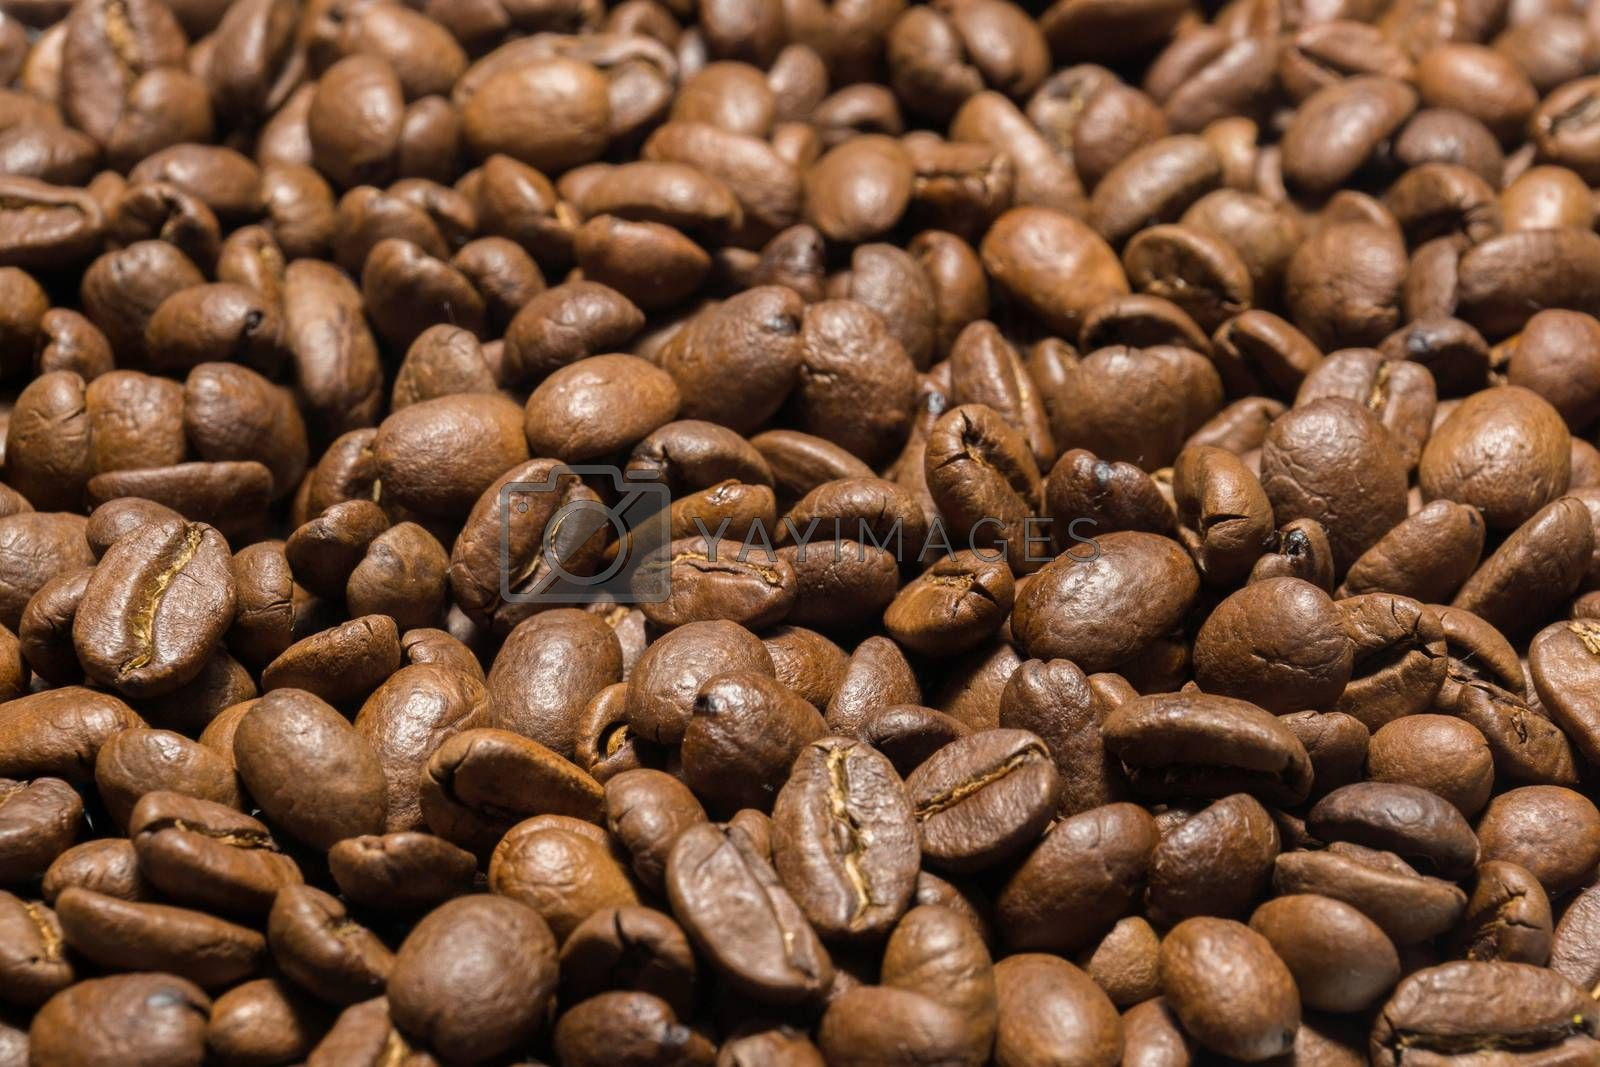 The photo shows roasted Arabica coffee beans